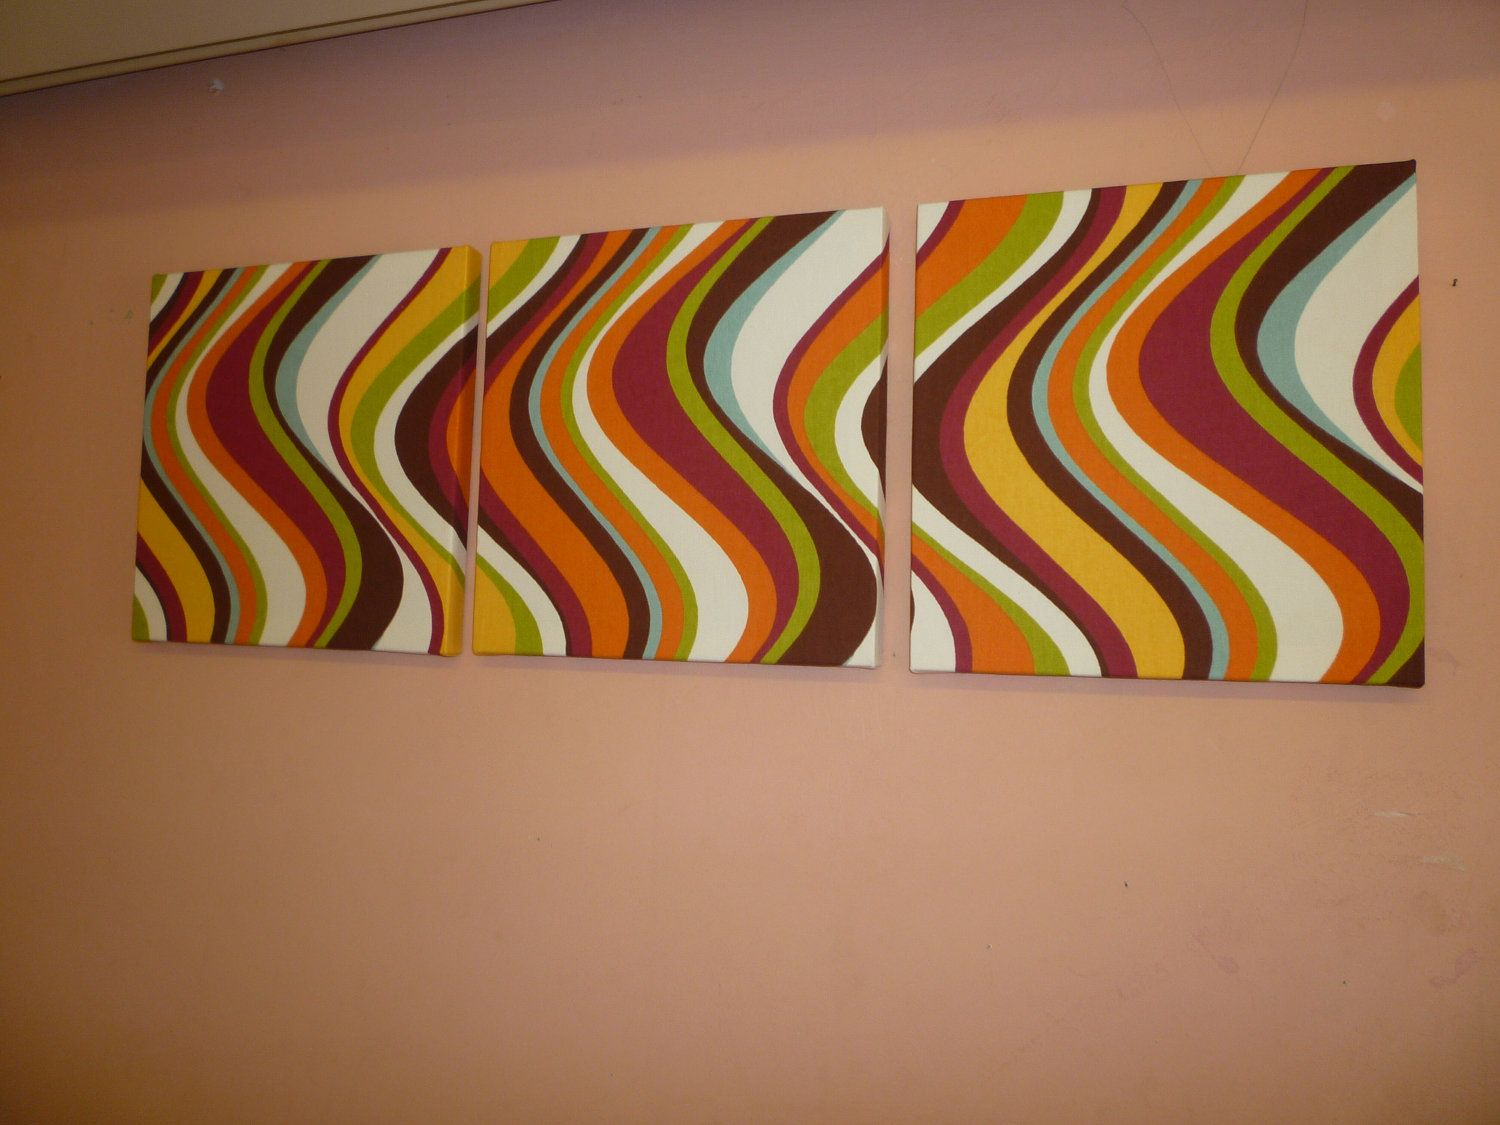 Fabric Wall Art Orange Red Green Blue Yellow Brown By